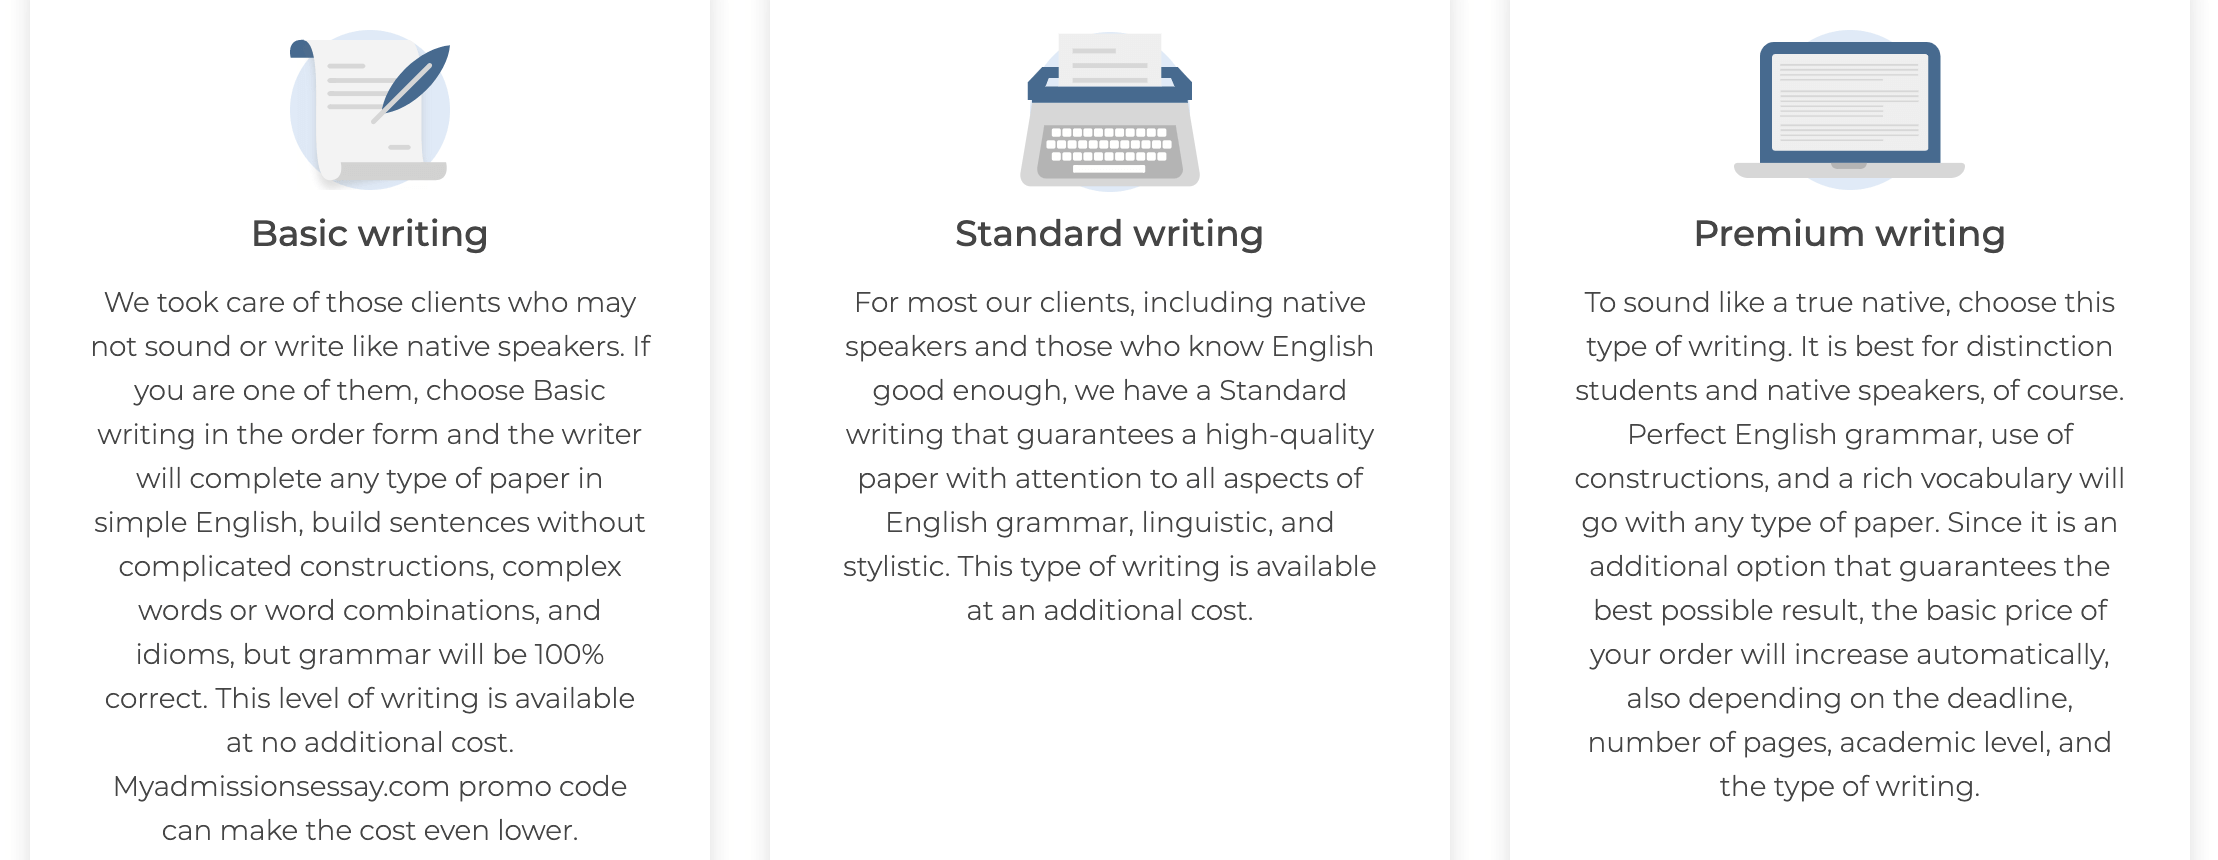 myadmissionsessay.com writers levels